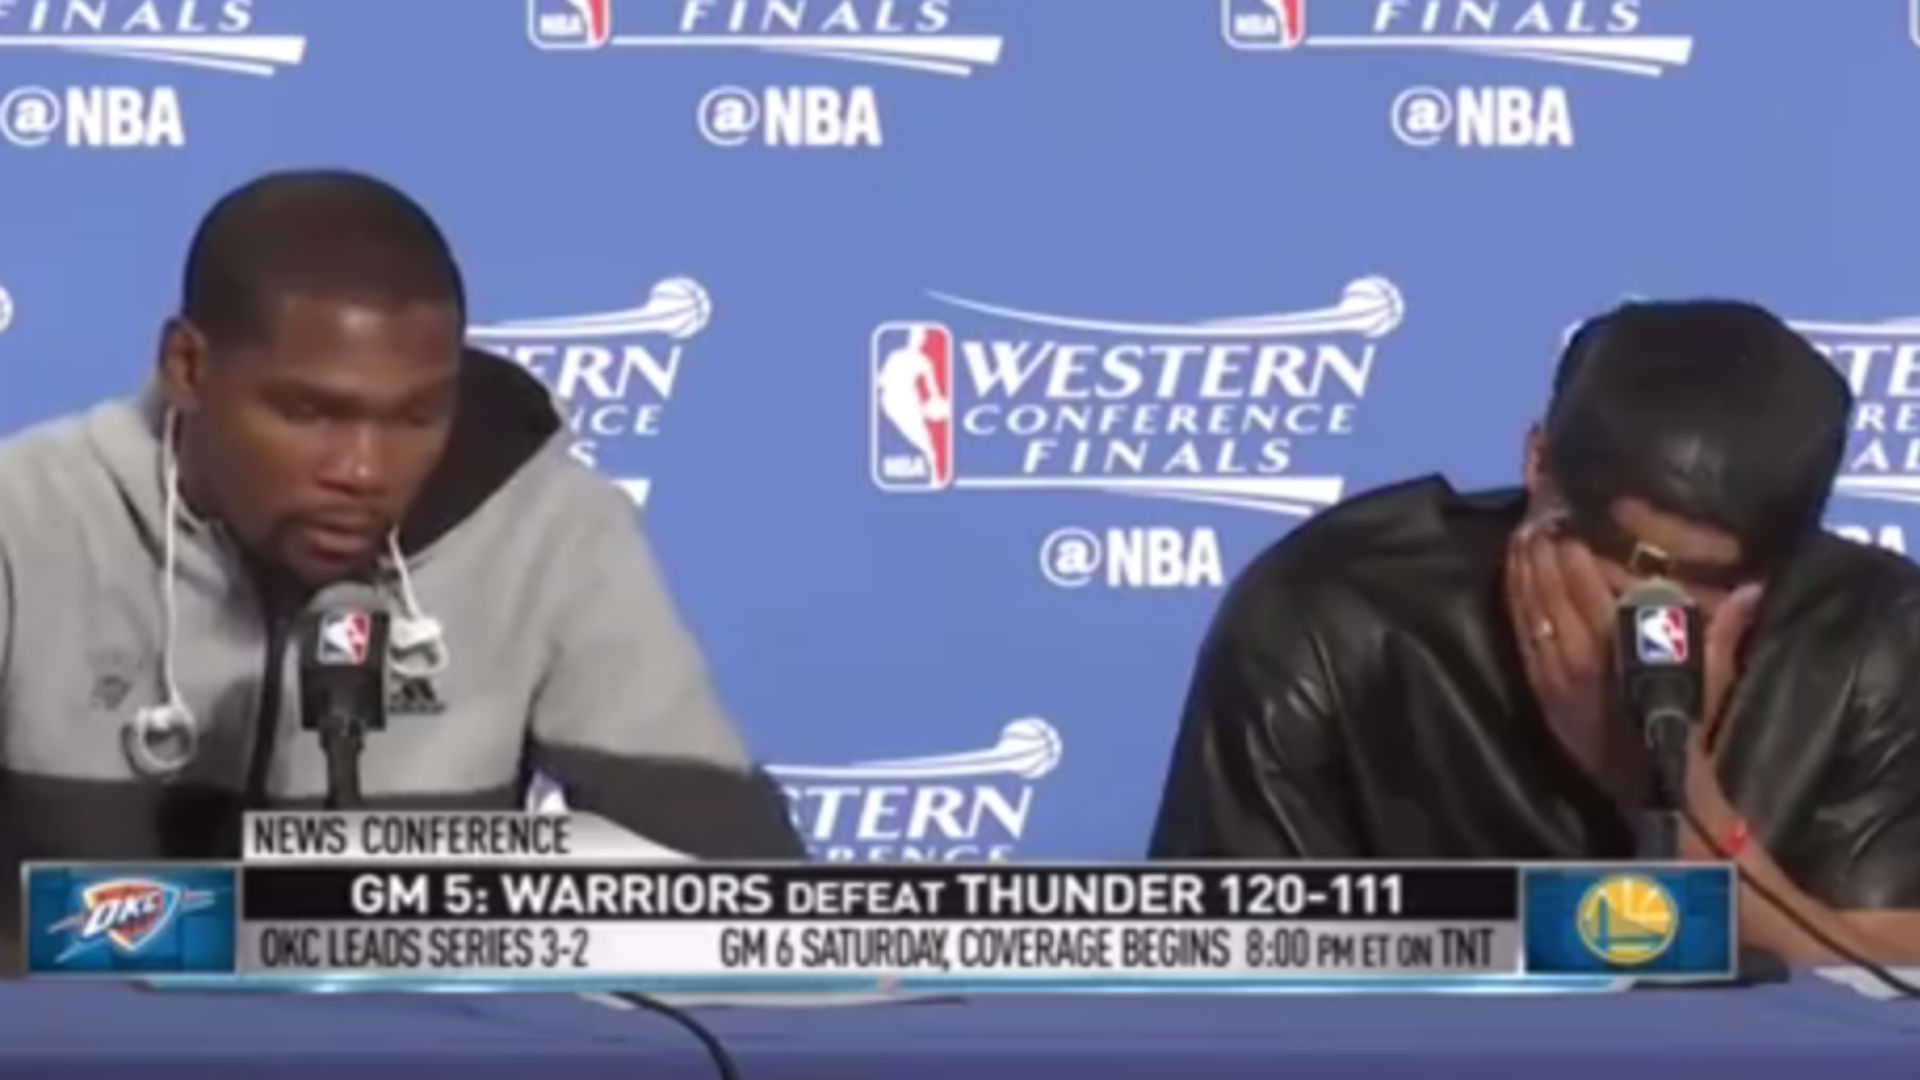 Russell Westbrook, Kevin Durant are unimpressed by Stephen Curry's defense